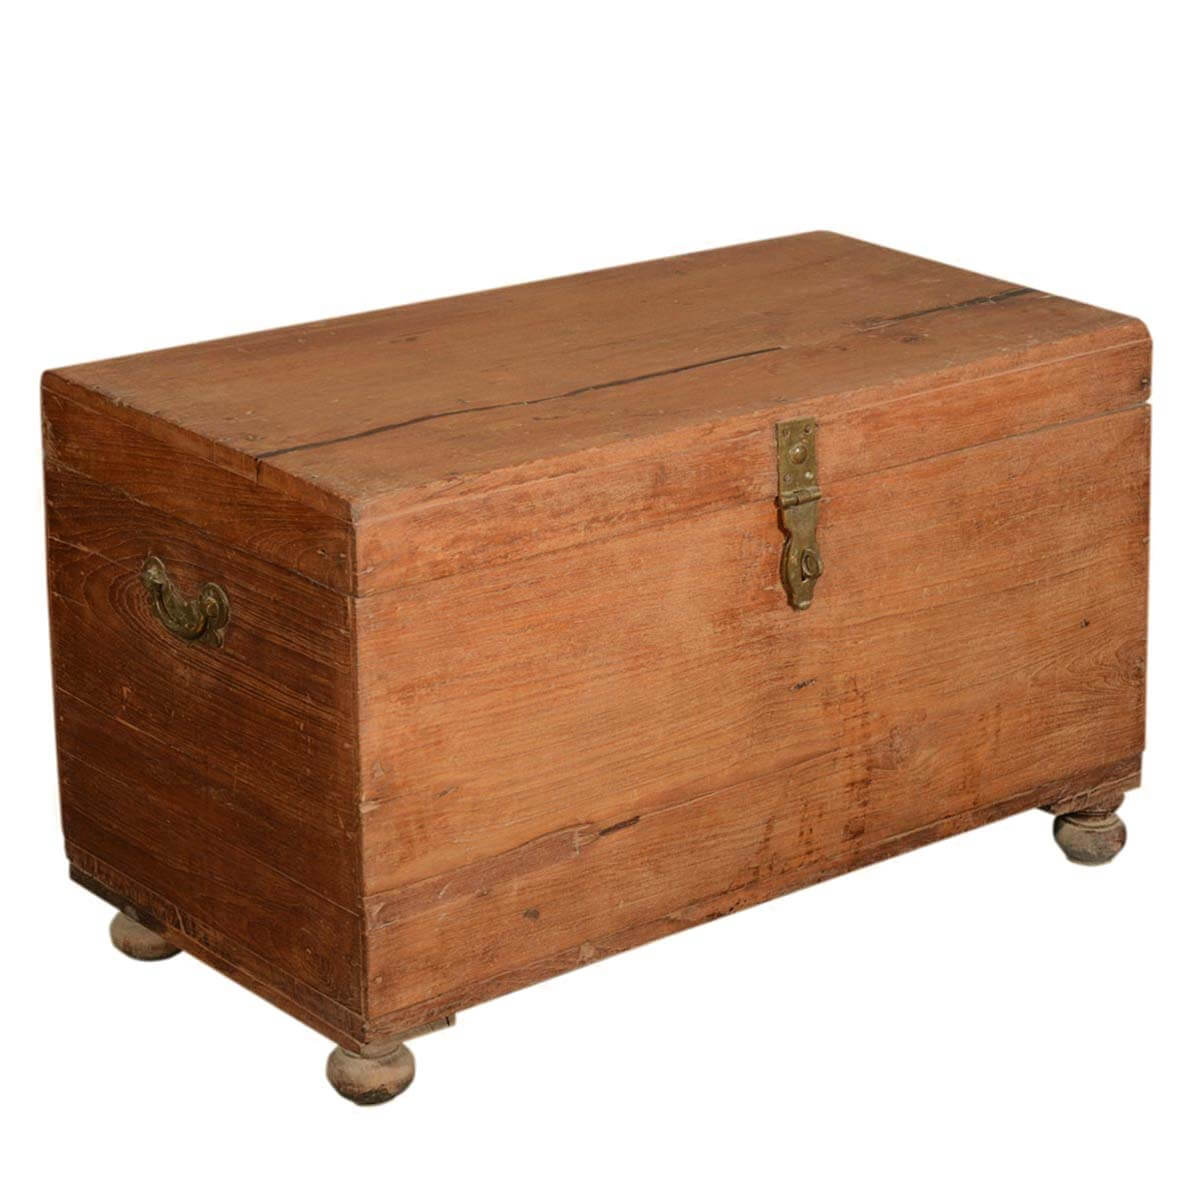 Wood Coffee Table With Storage Grinnell Primitive Reclaimed Wood Storage Coffee Table Chest